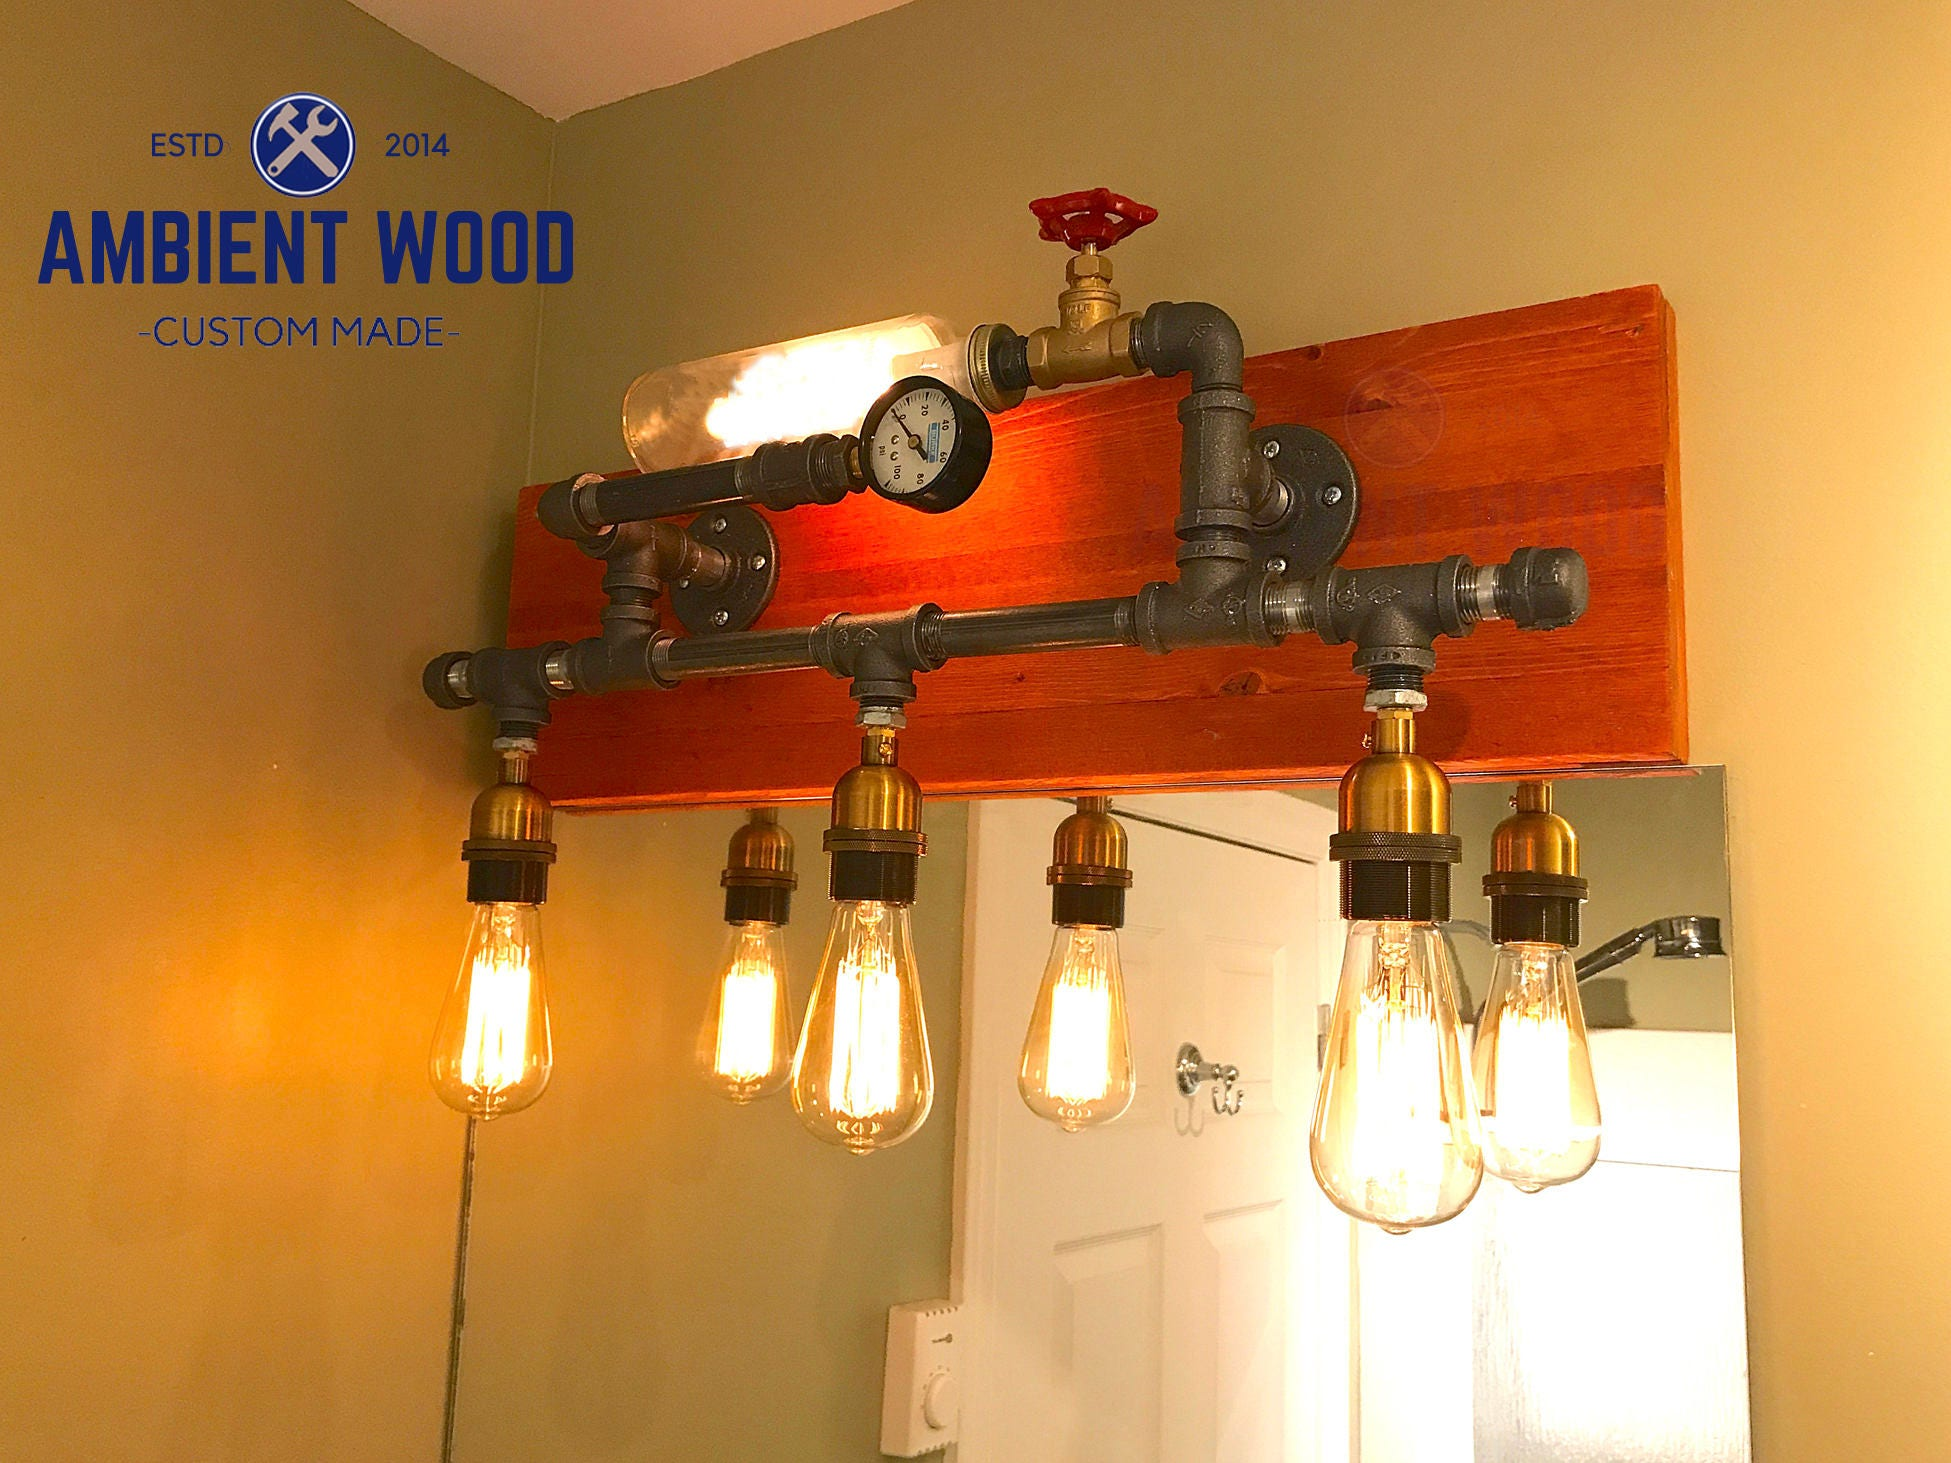 Pipe wood panel industrial bathroom vanity light fixture bar light arubaitofo Image collections